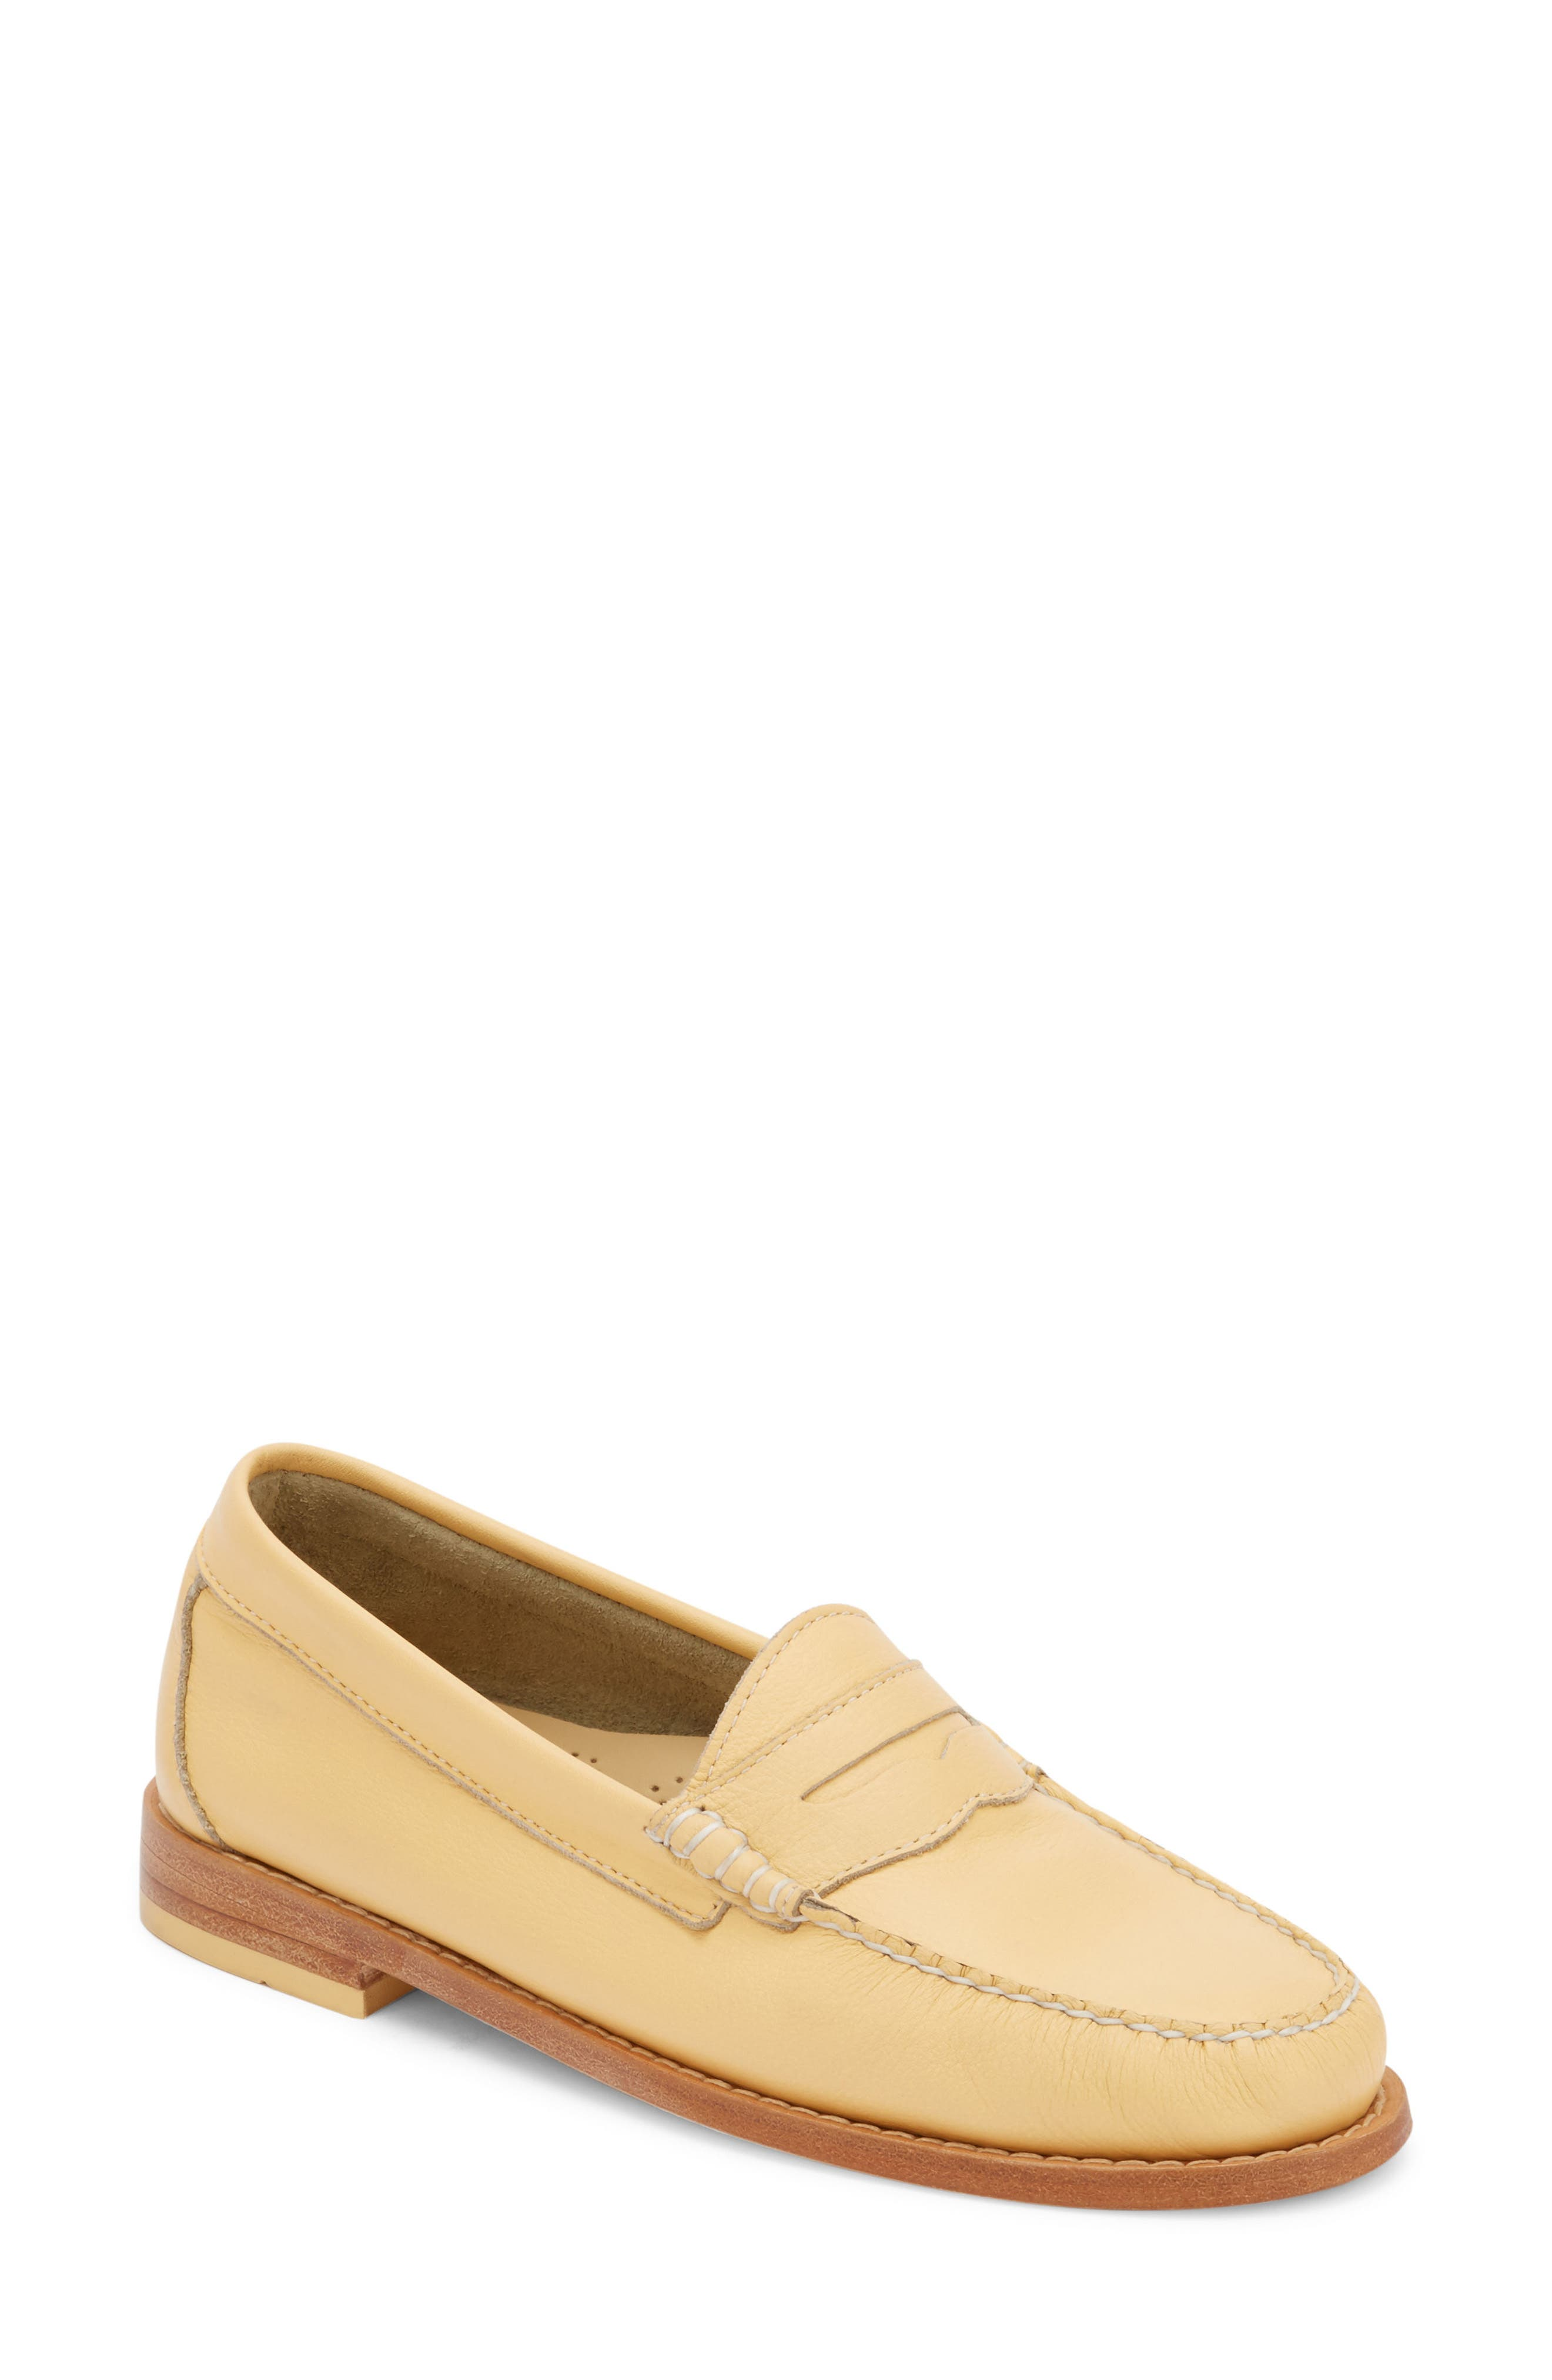 'Whitney' Loafer,                             Main thumbnail 18, color,